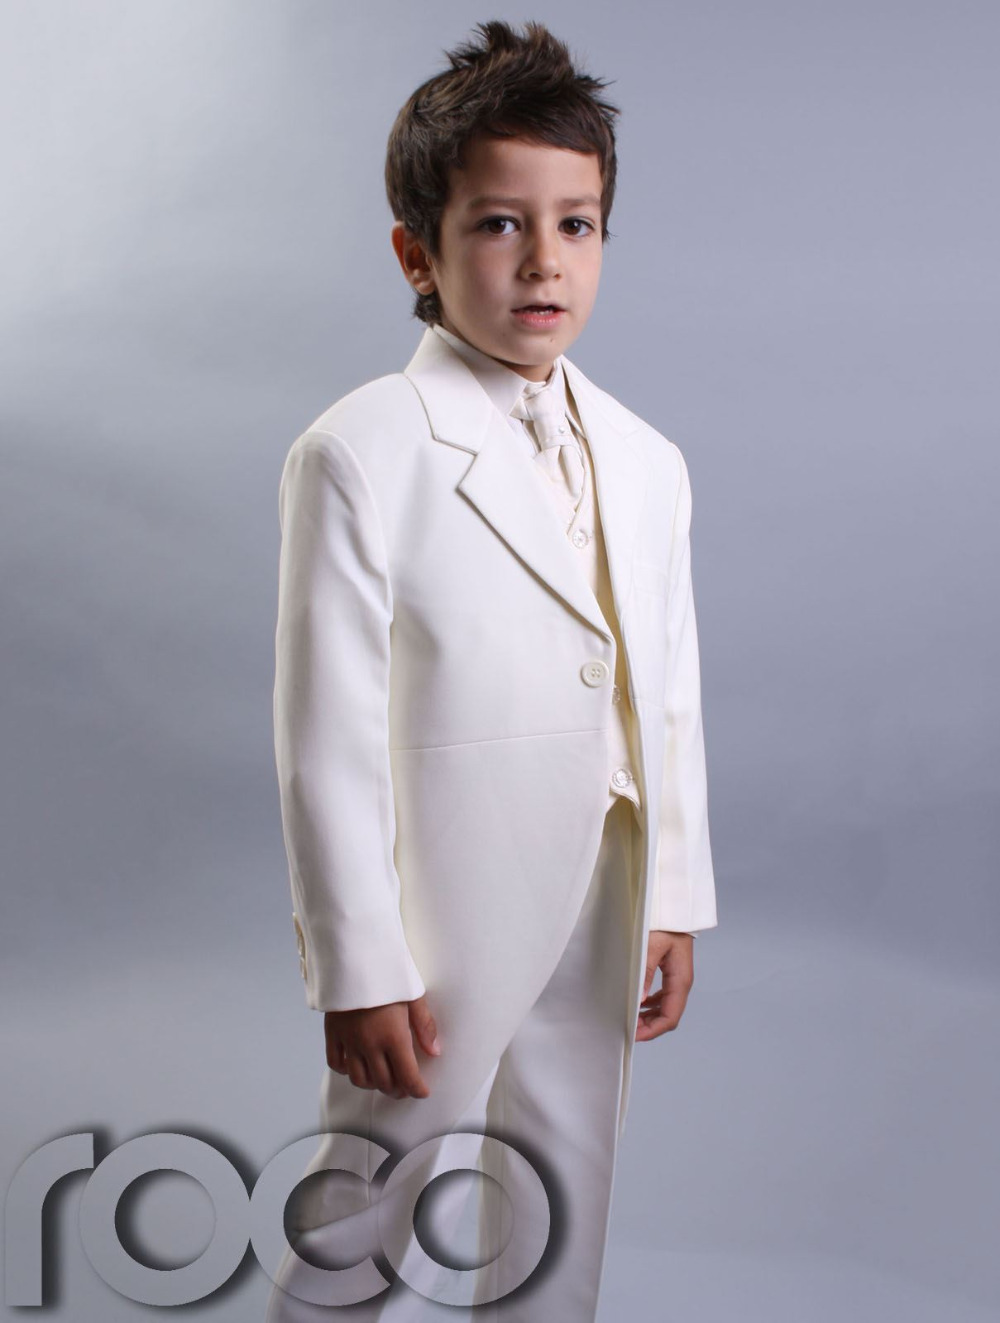 Boys Cream Tail / Morning /Page Boy Suits, Wedding Suits Custom Made ...